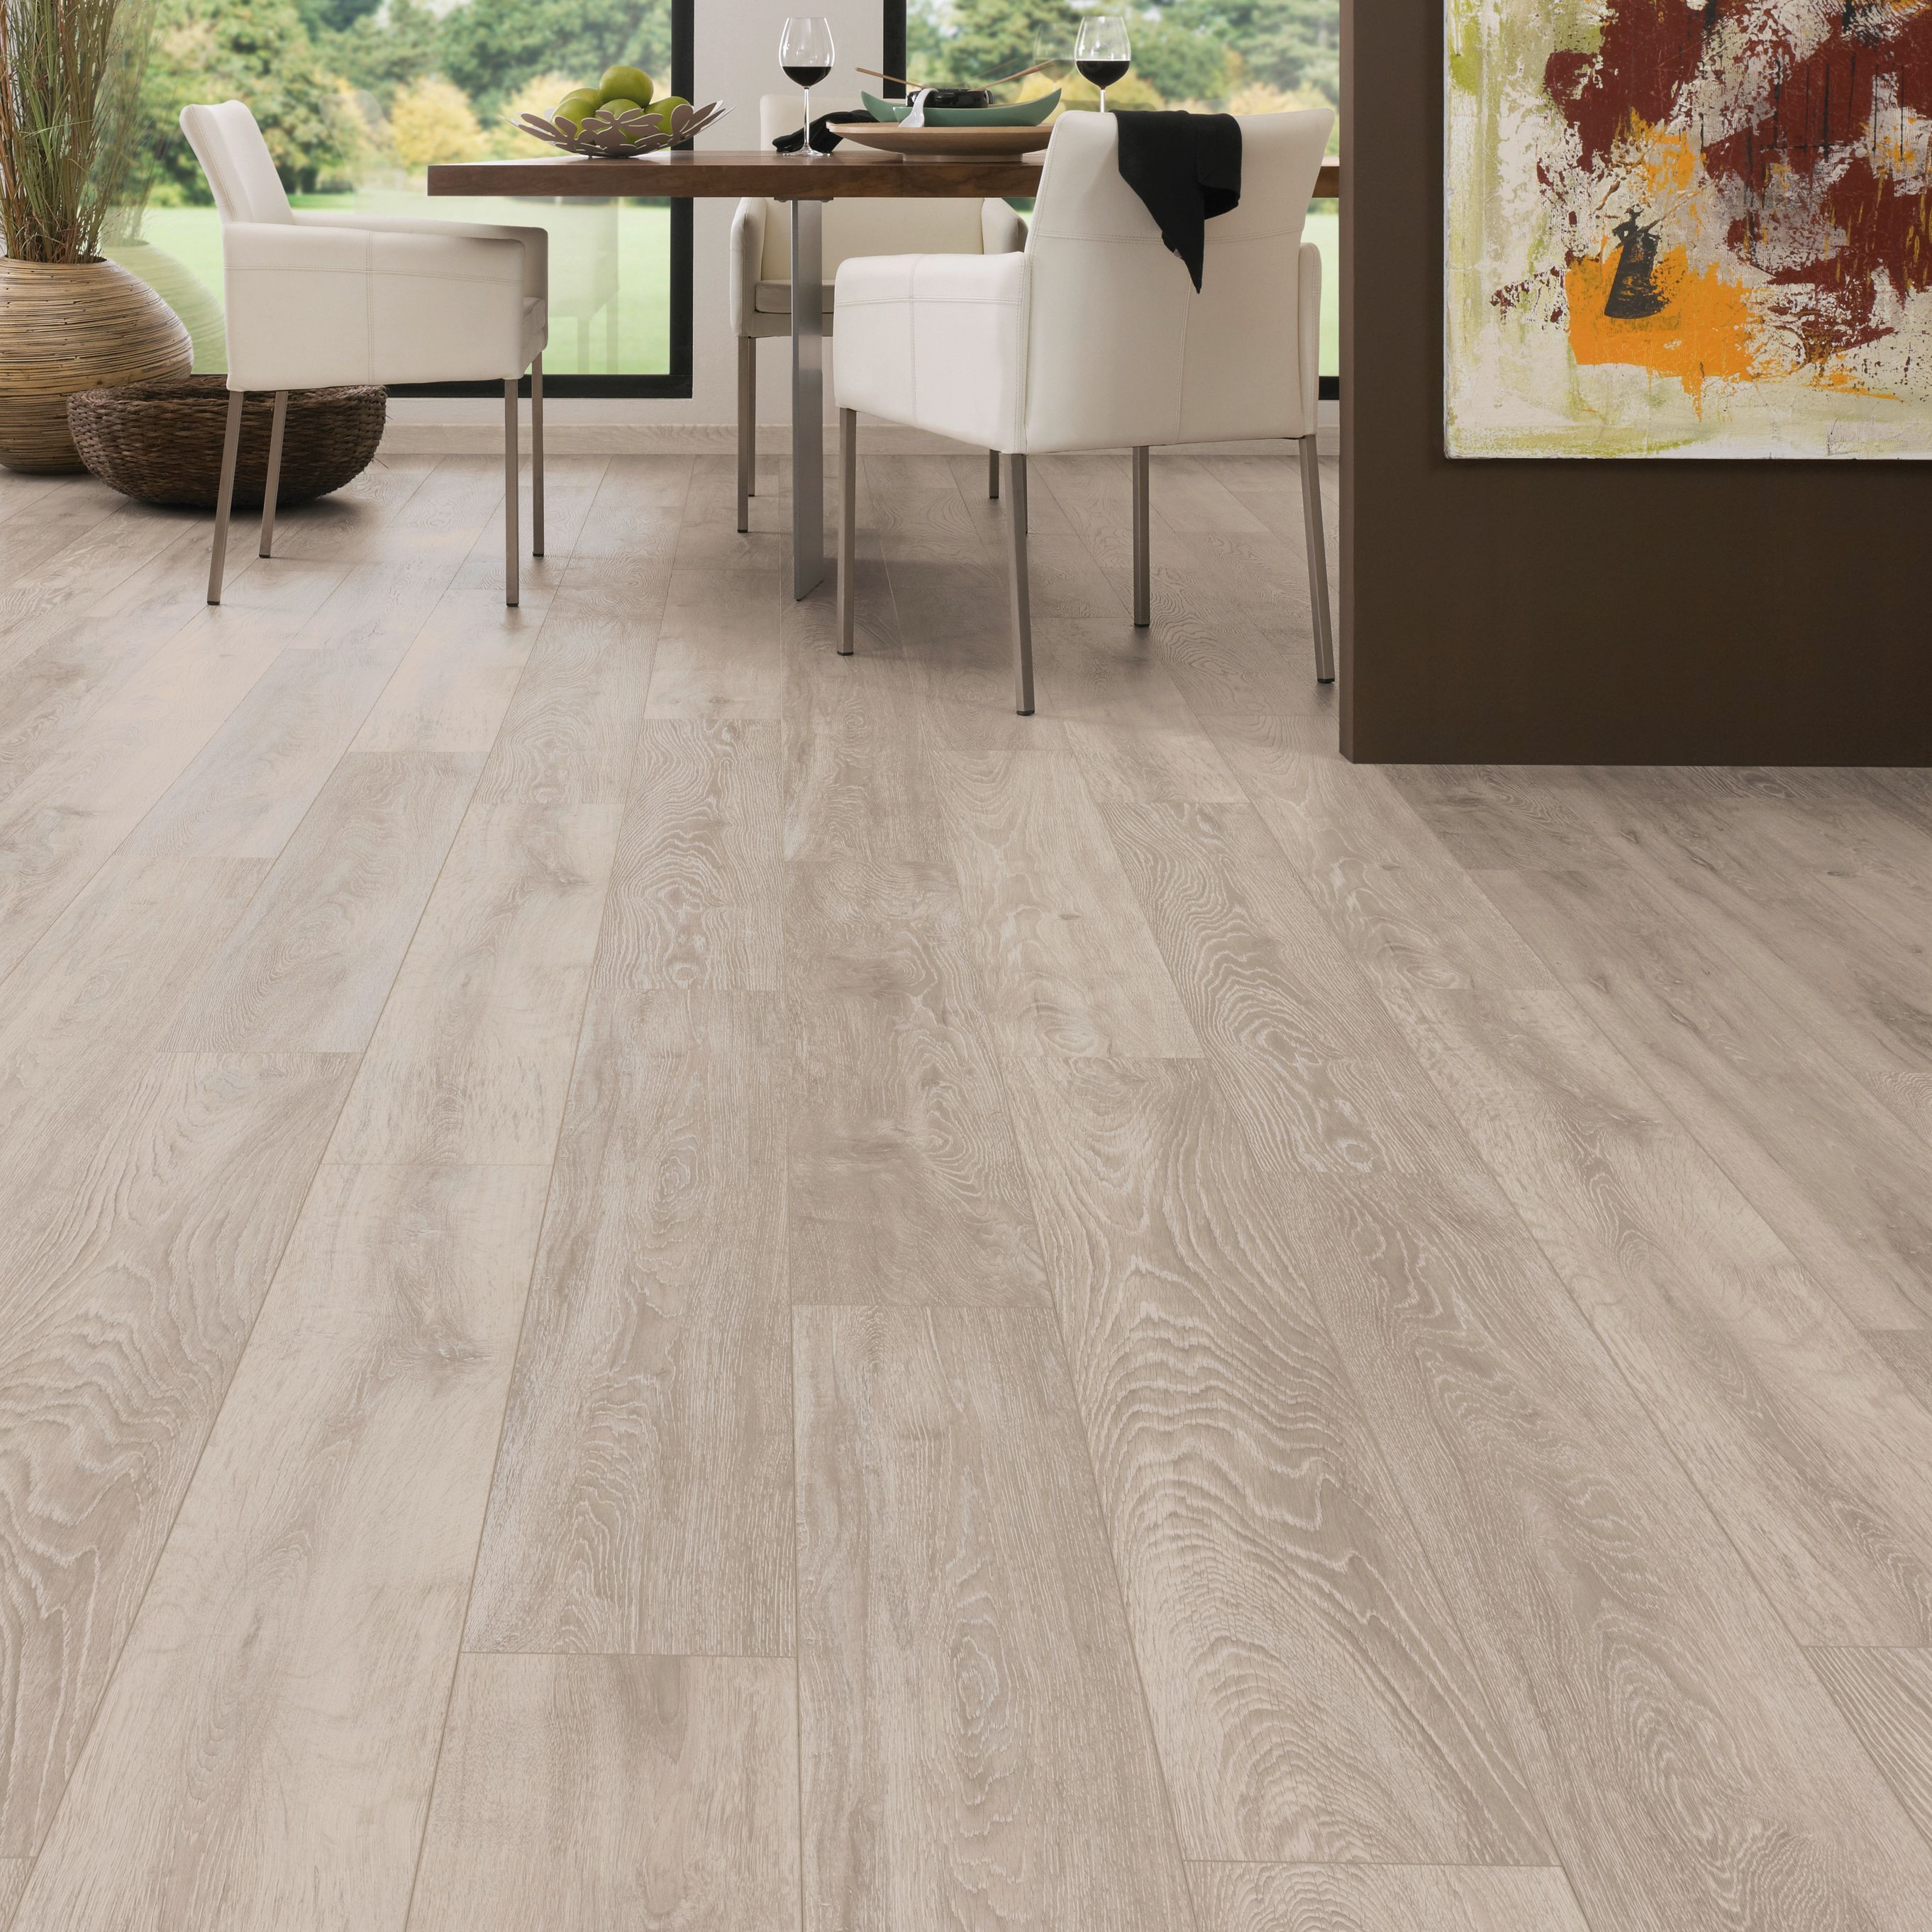 Amadeo Boulder Embossed Laminate Flooring 2.22 m² Pack